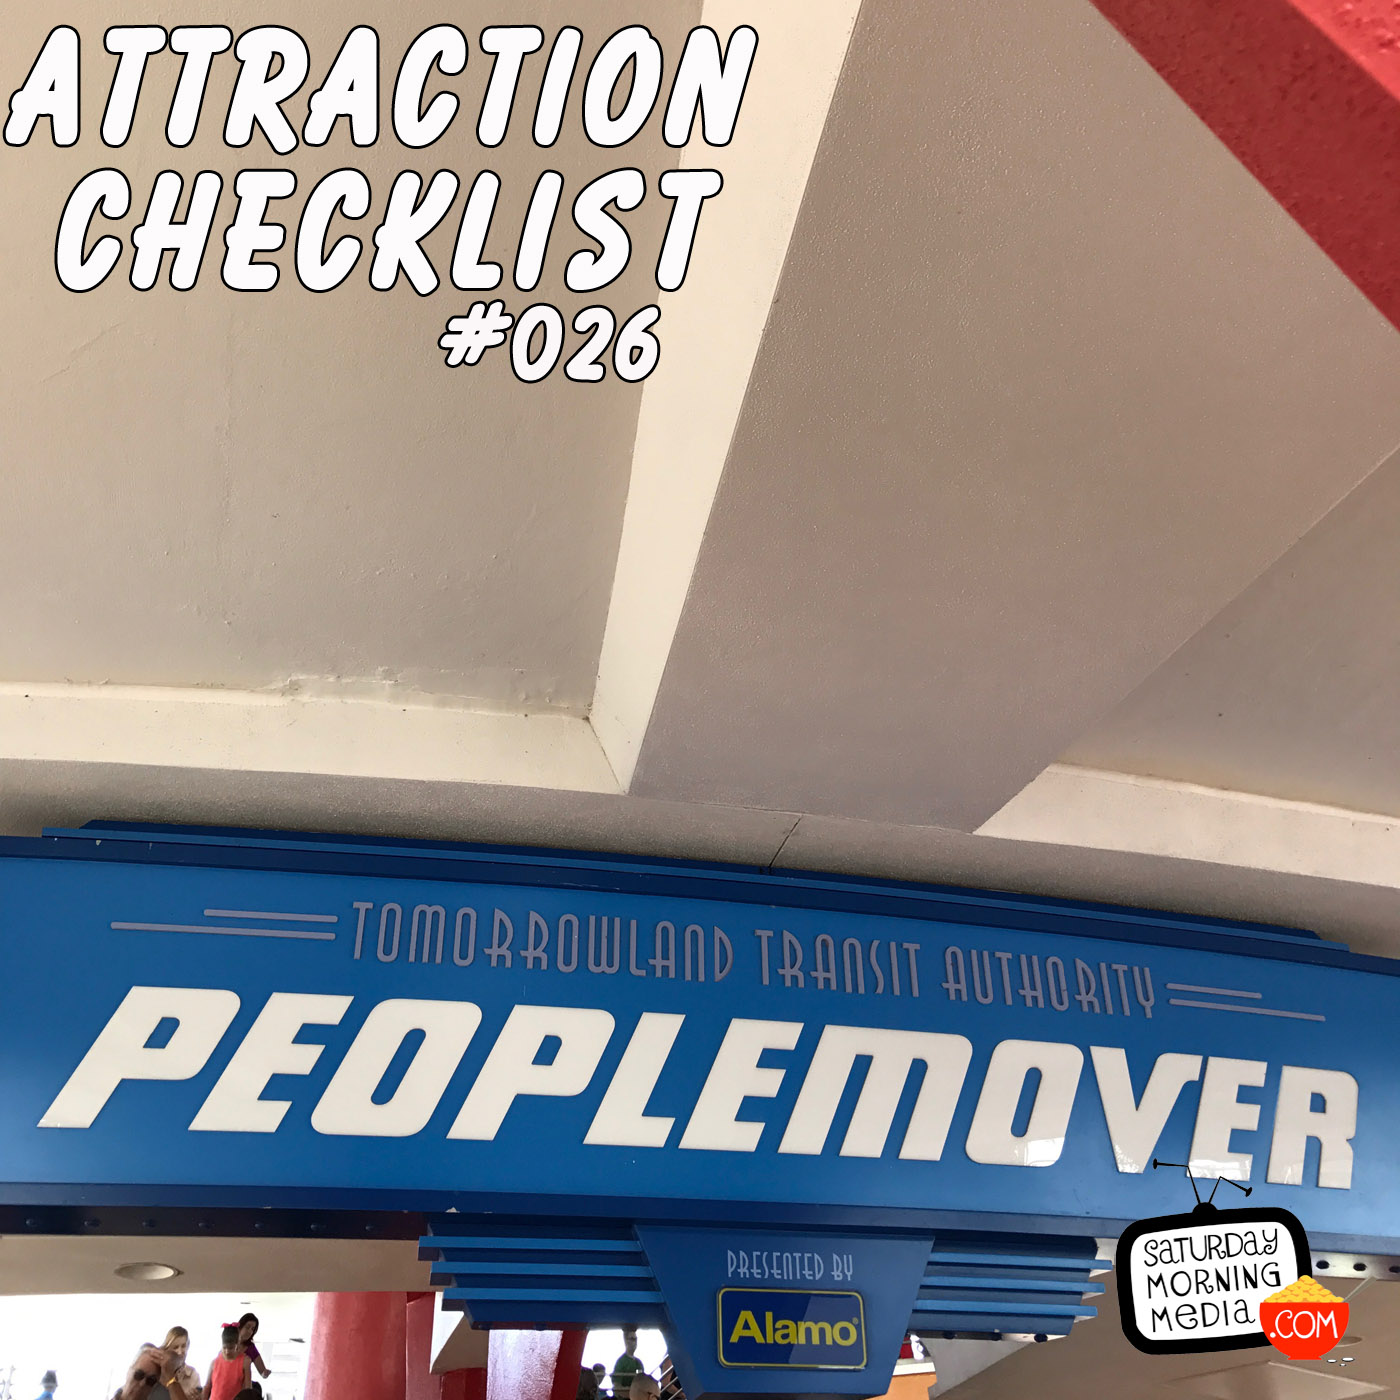 Artwork for Tomorrowland Transit Authority PeopleMover - Magic Kingdom - Attraction Checklist #026